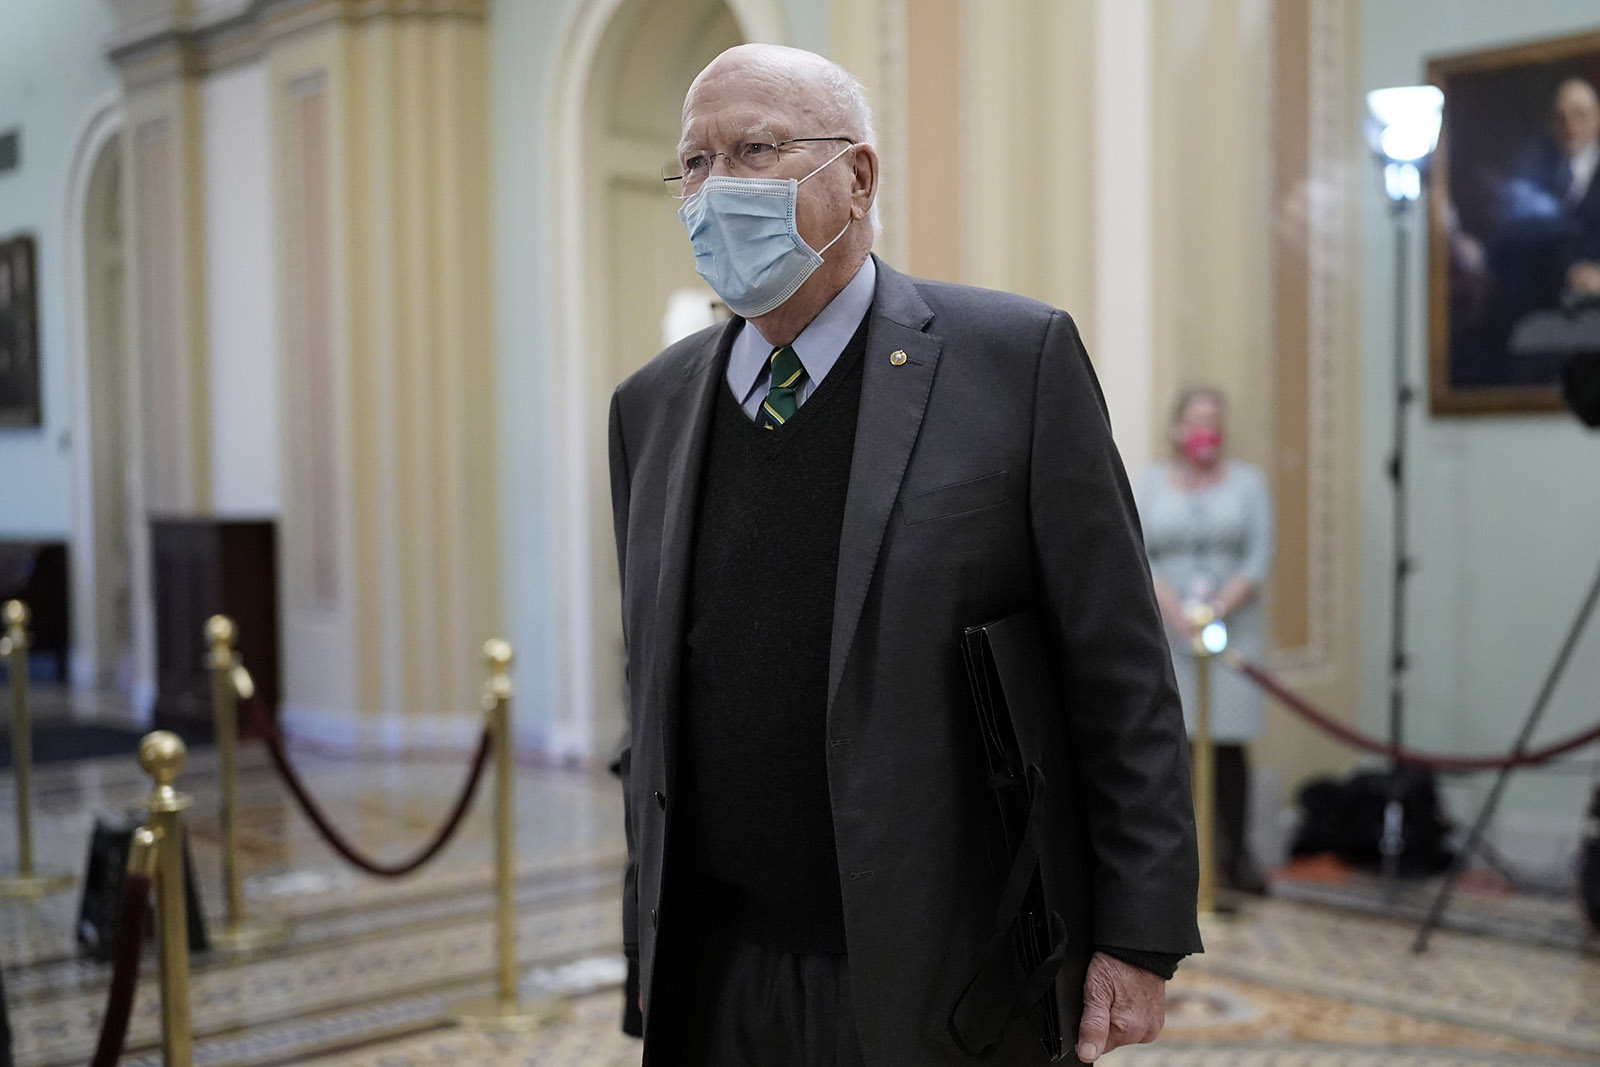 Sen. Patrick Leahy leaves the Senate Chamber after presiding over the second impeachment trial of former President Donald Trump, at the Capitol in Washington on Saturday, February 13.